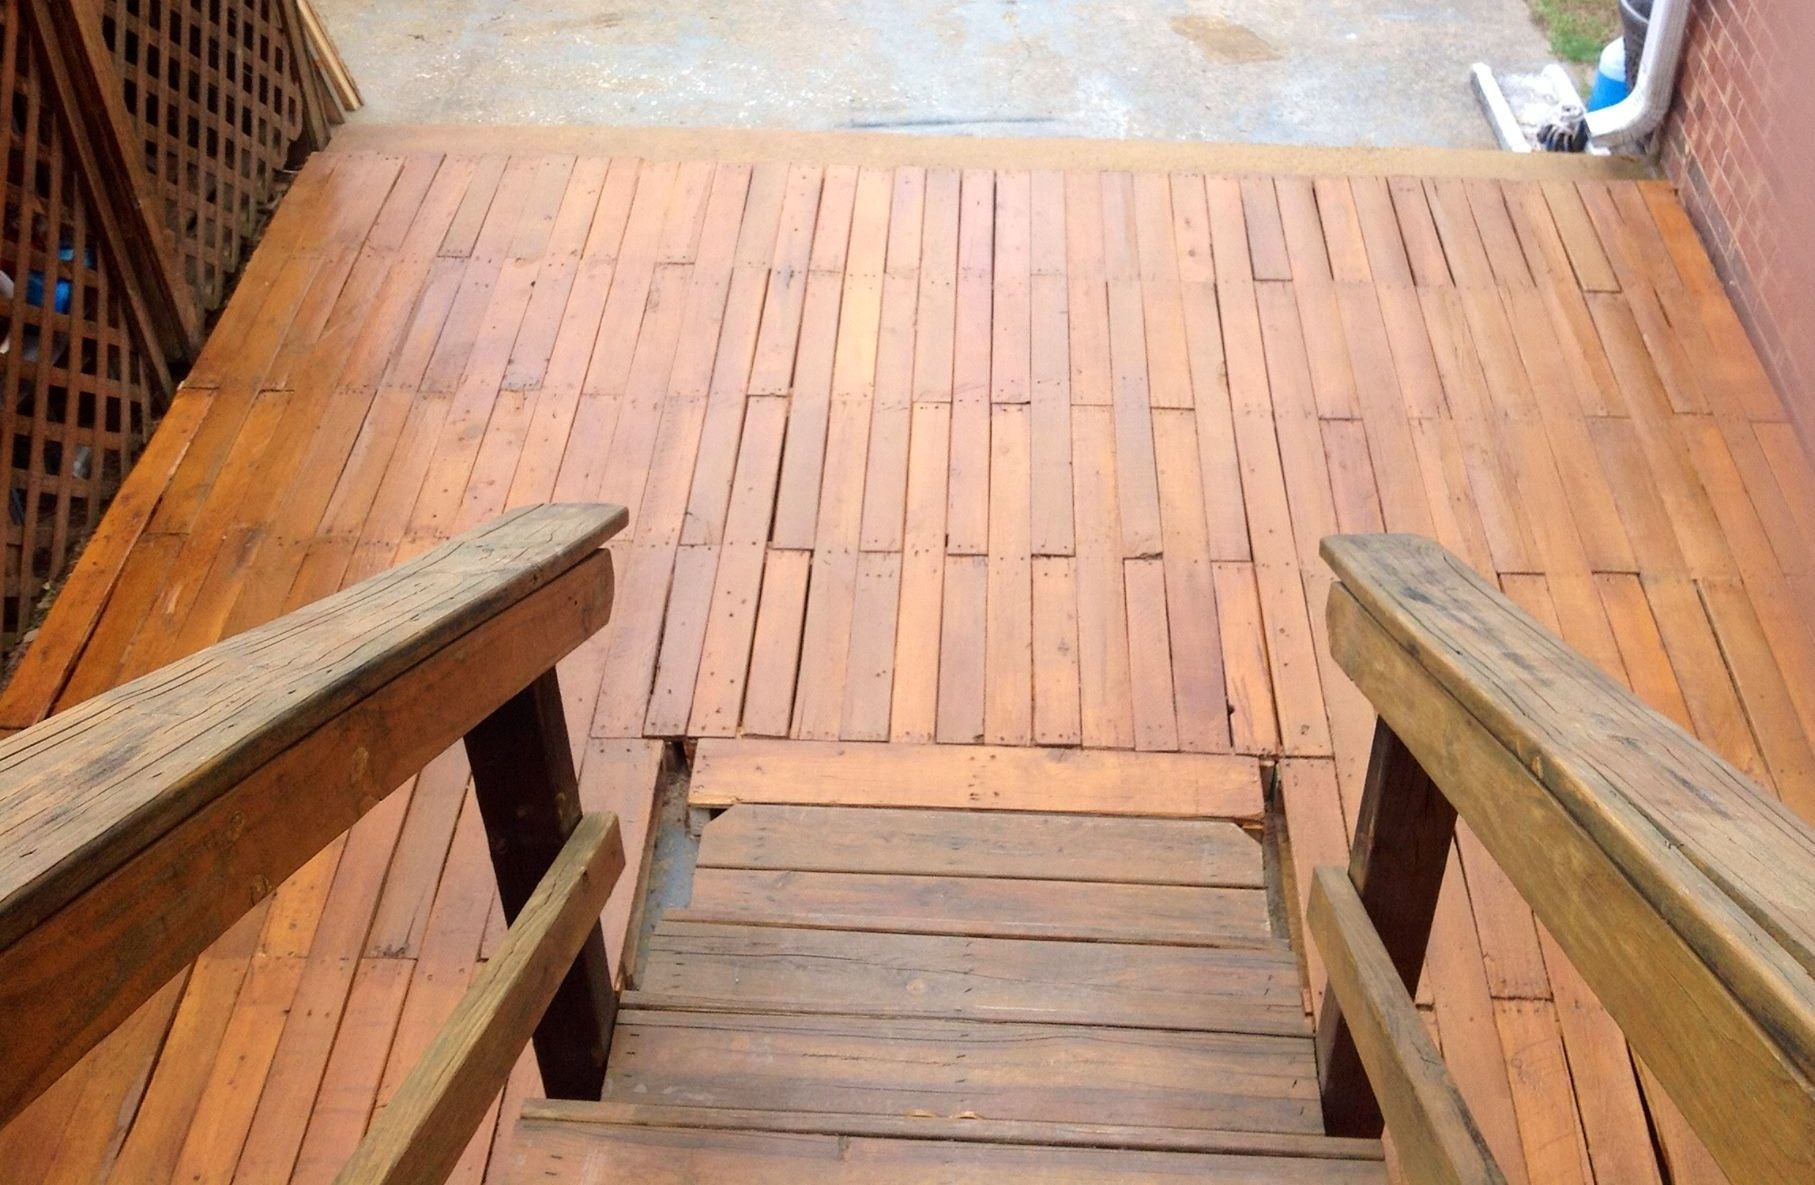 Pallet Deck I Built With My Husband To Cover Our Concrete Patio Concrete Patio Pallet Decking Outdoor Decor